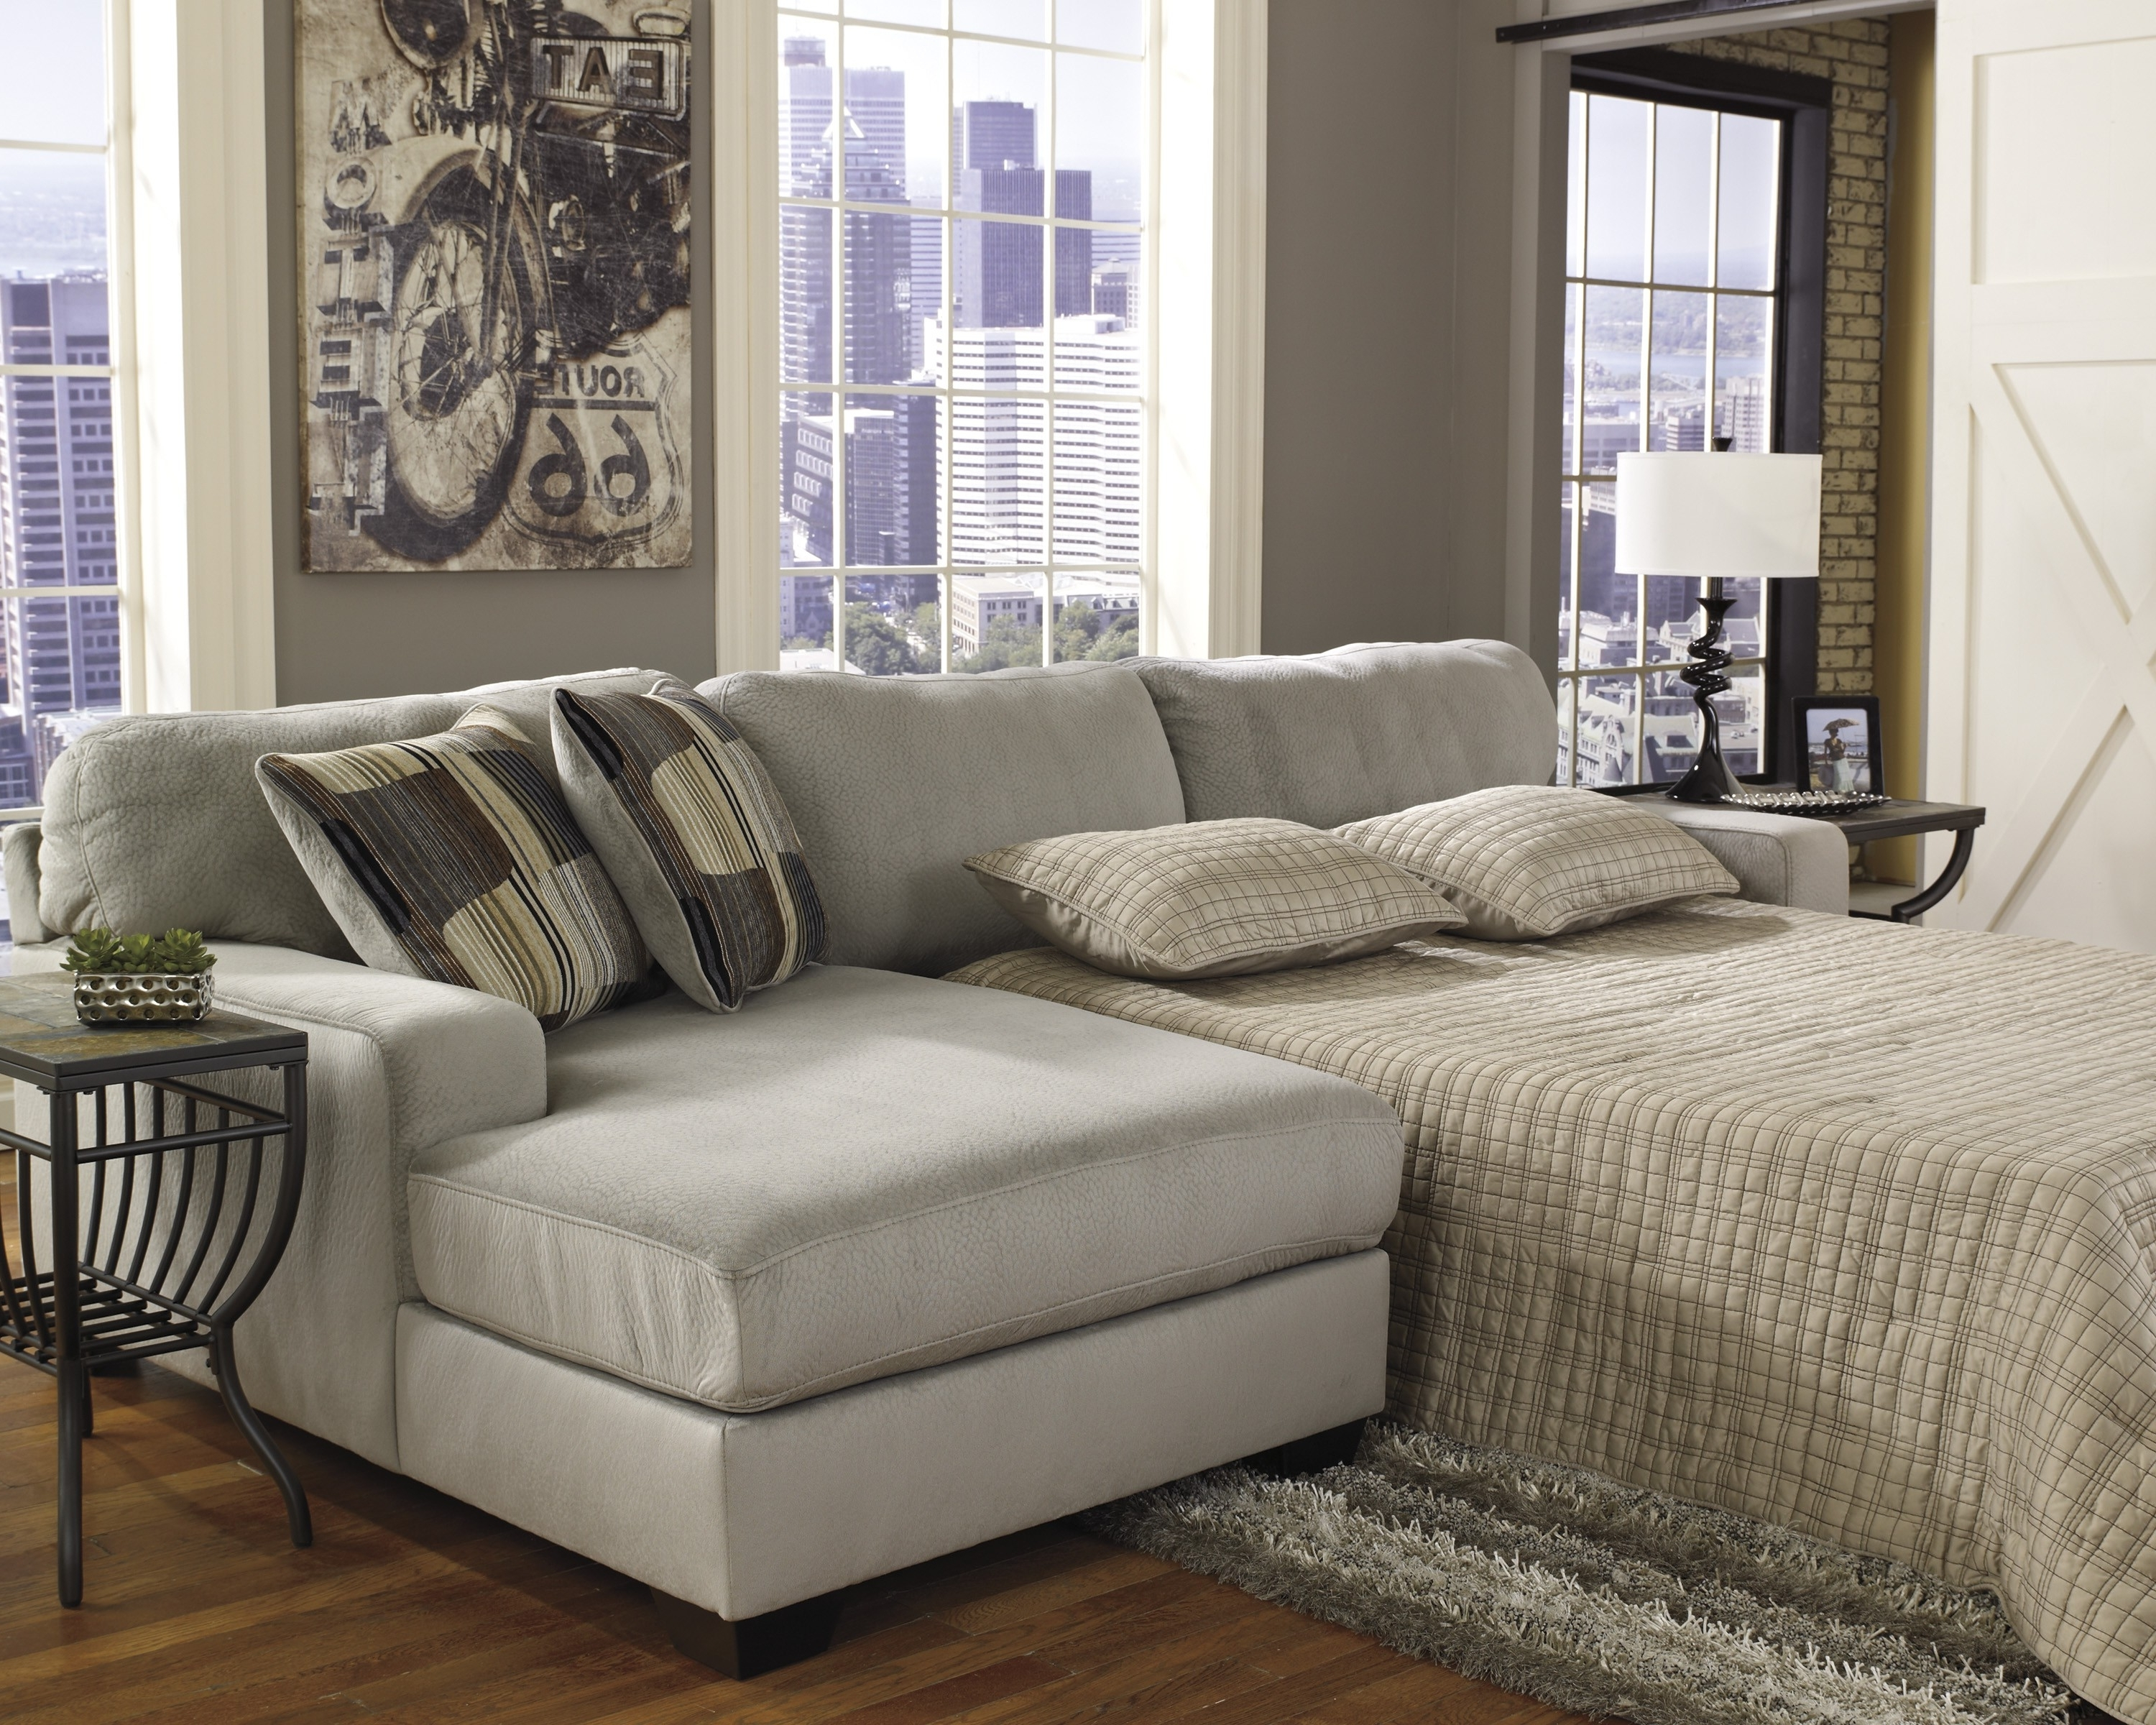 Best And Newest Adjustable Sectional Sofas With Queen Bed Within Sofa : Magnificent Sectional Sofa Queen Bed Great Sleeper (View 7 of 20)